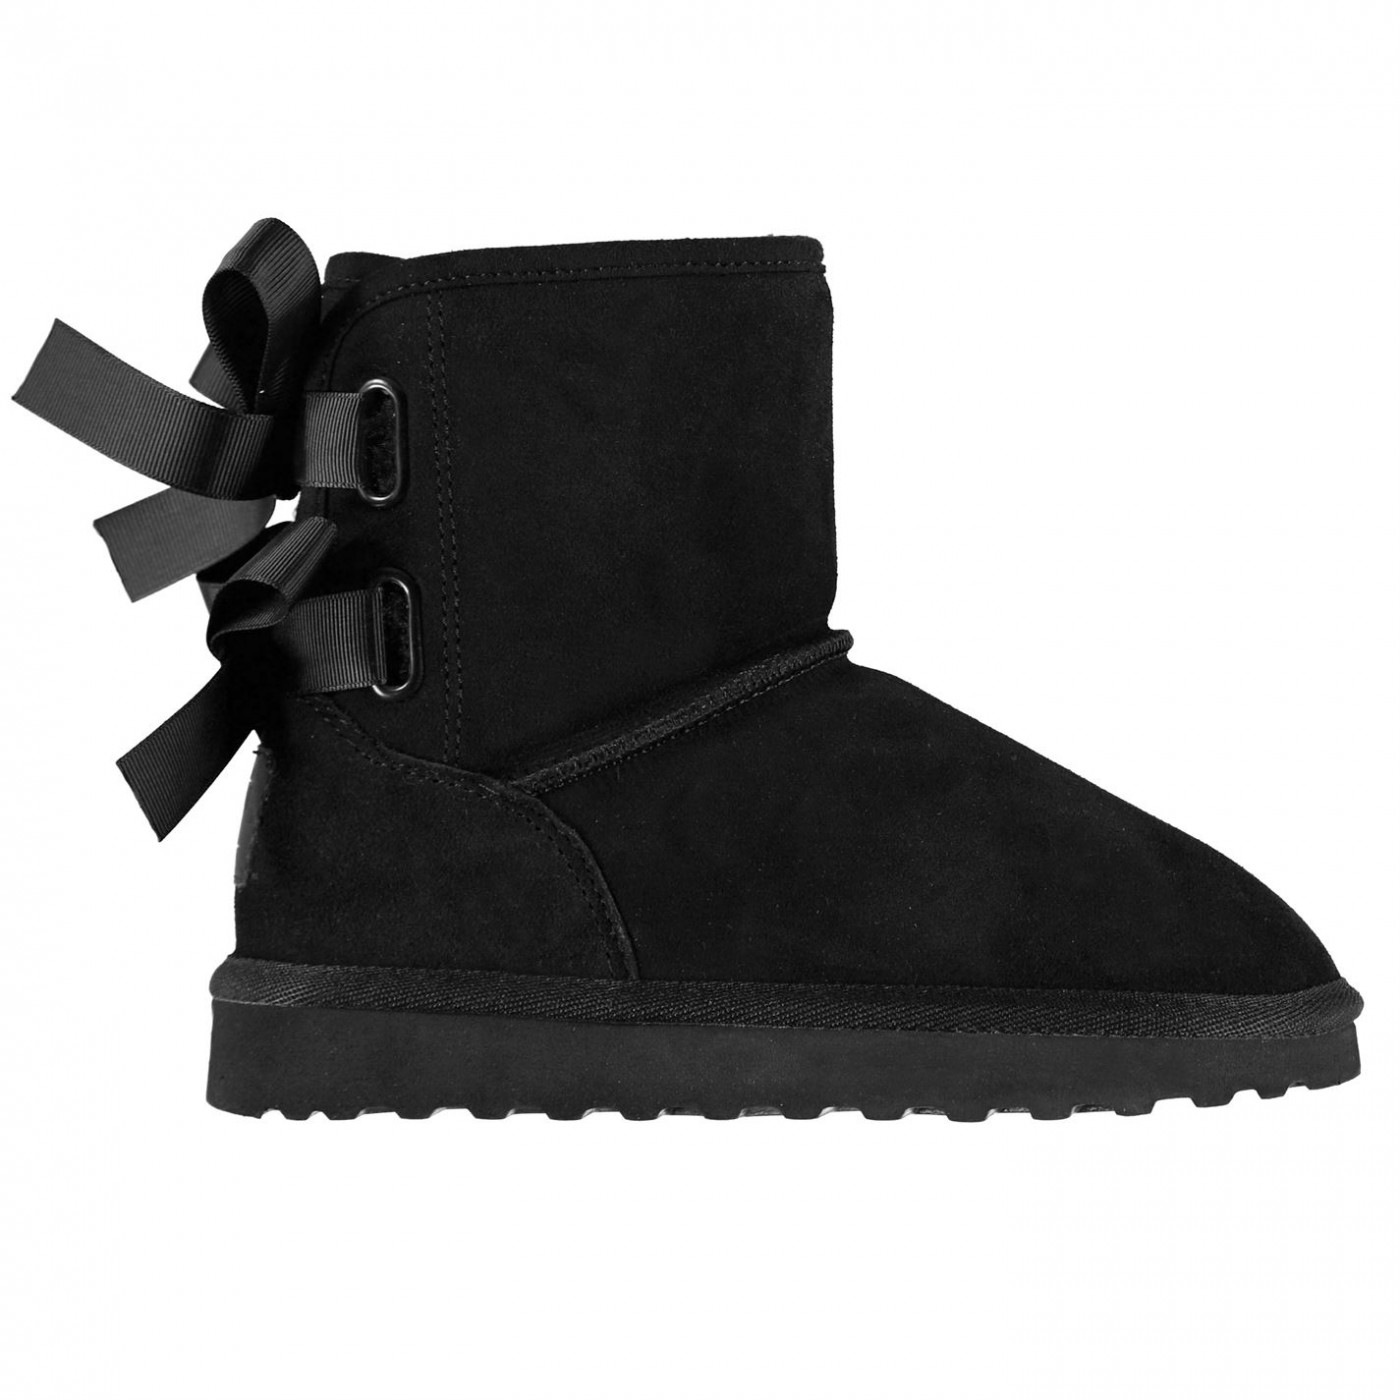 SoulCal Bodie Snug Boots Child Girls